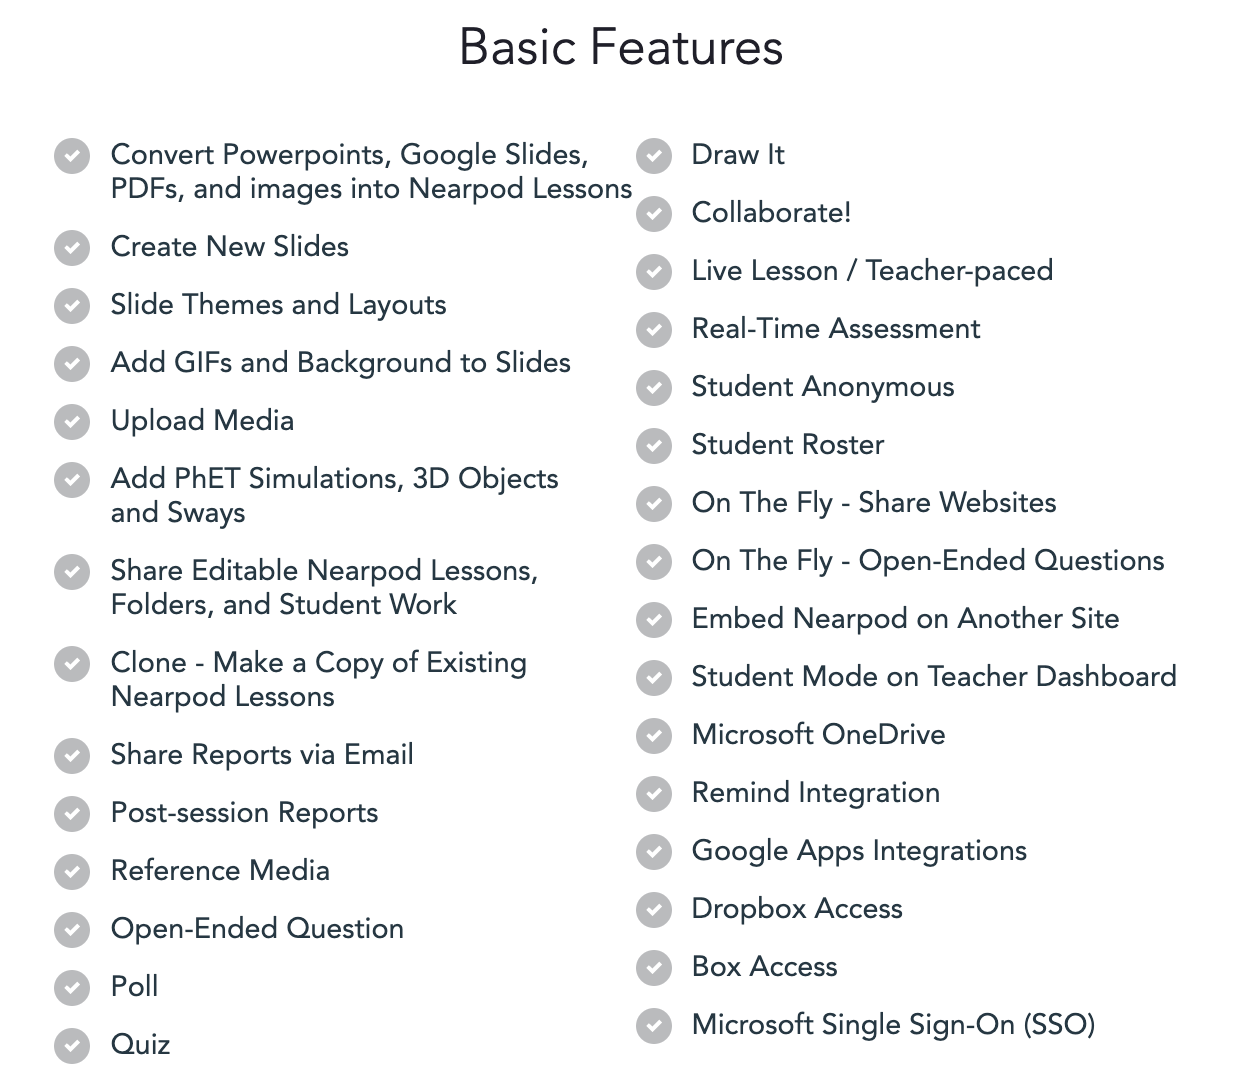 Basic features of Nearpod that are FREE